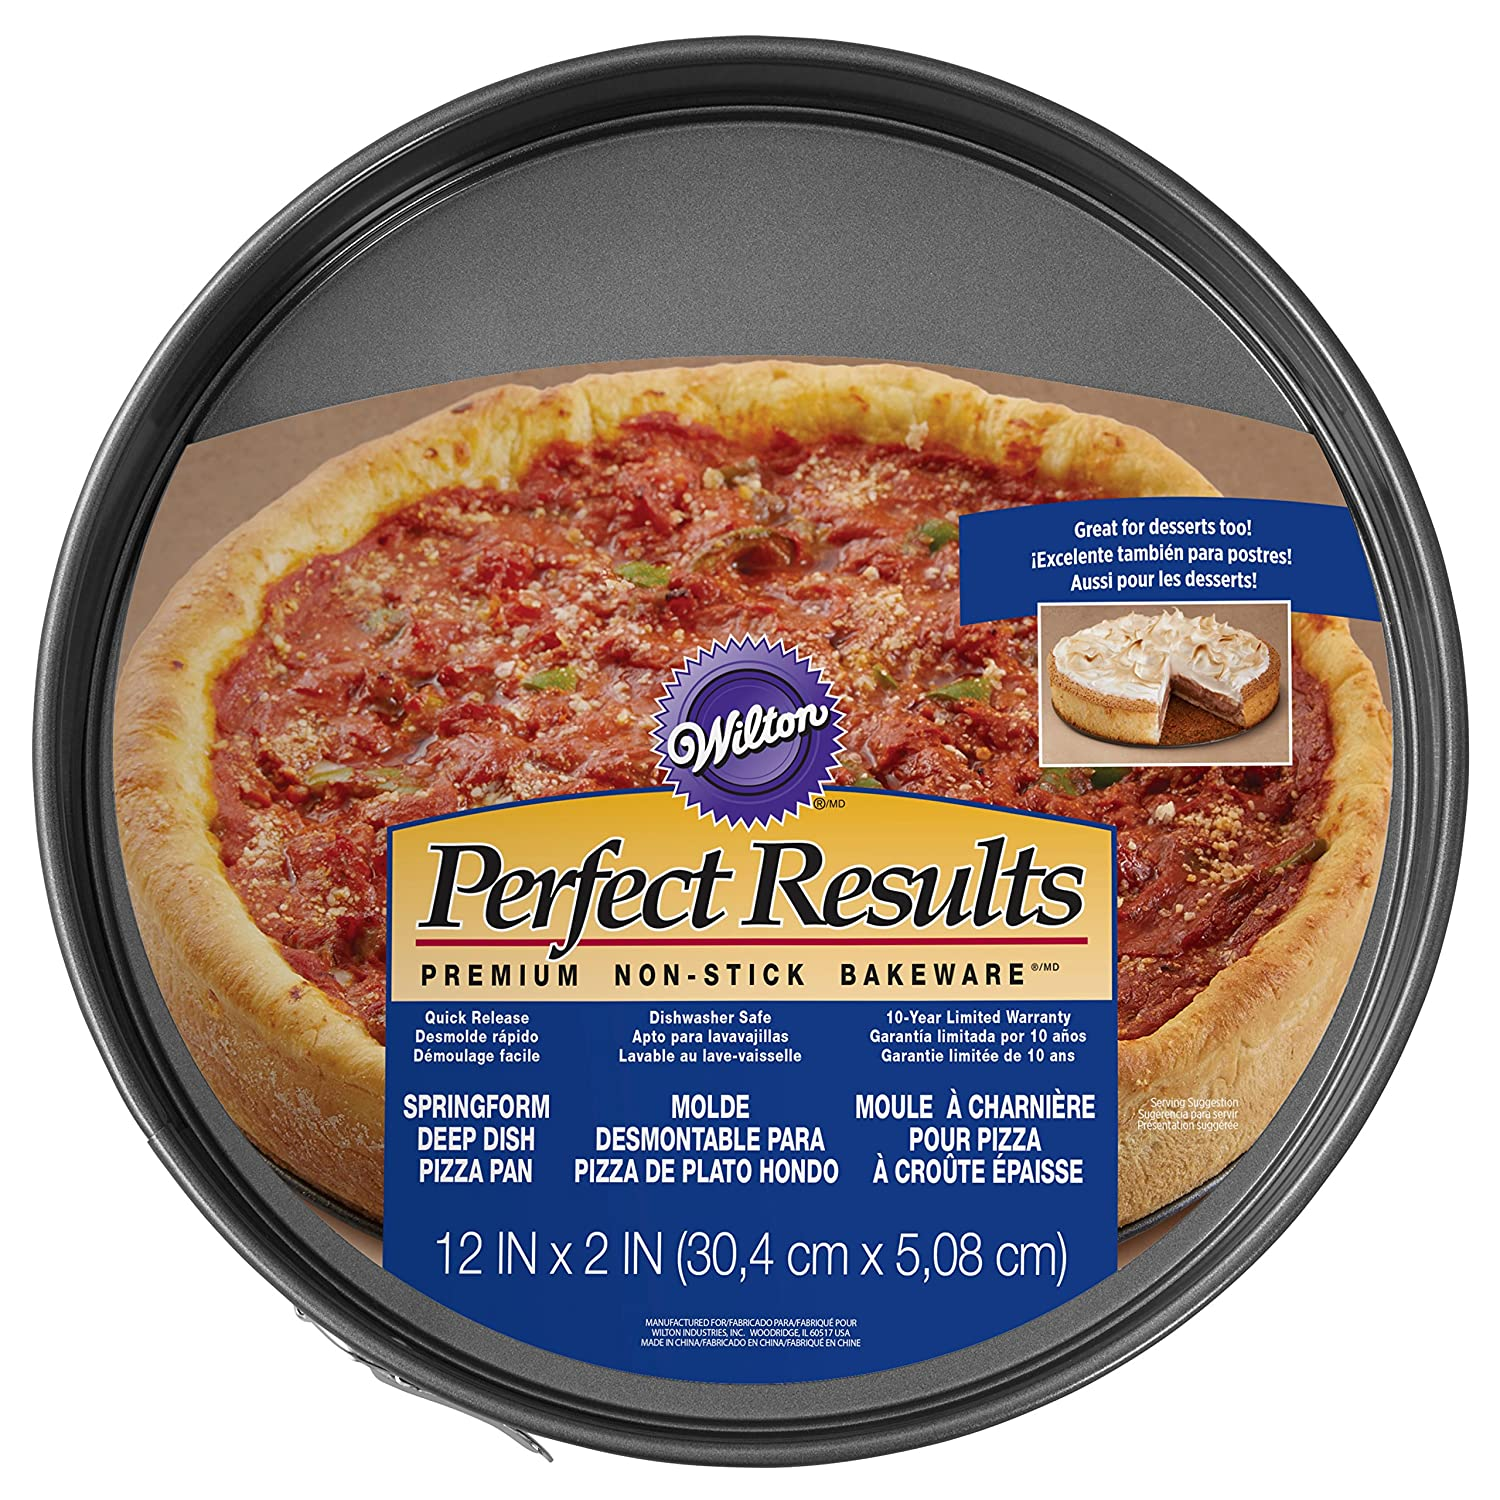 Amazon.com: Wilton Deep Dish Pizza and Cheesecake Springform Pan, 12-Inch: Kitchen & Dining